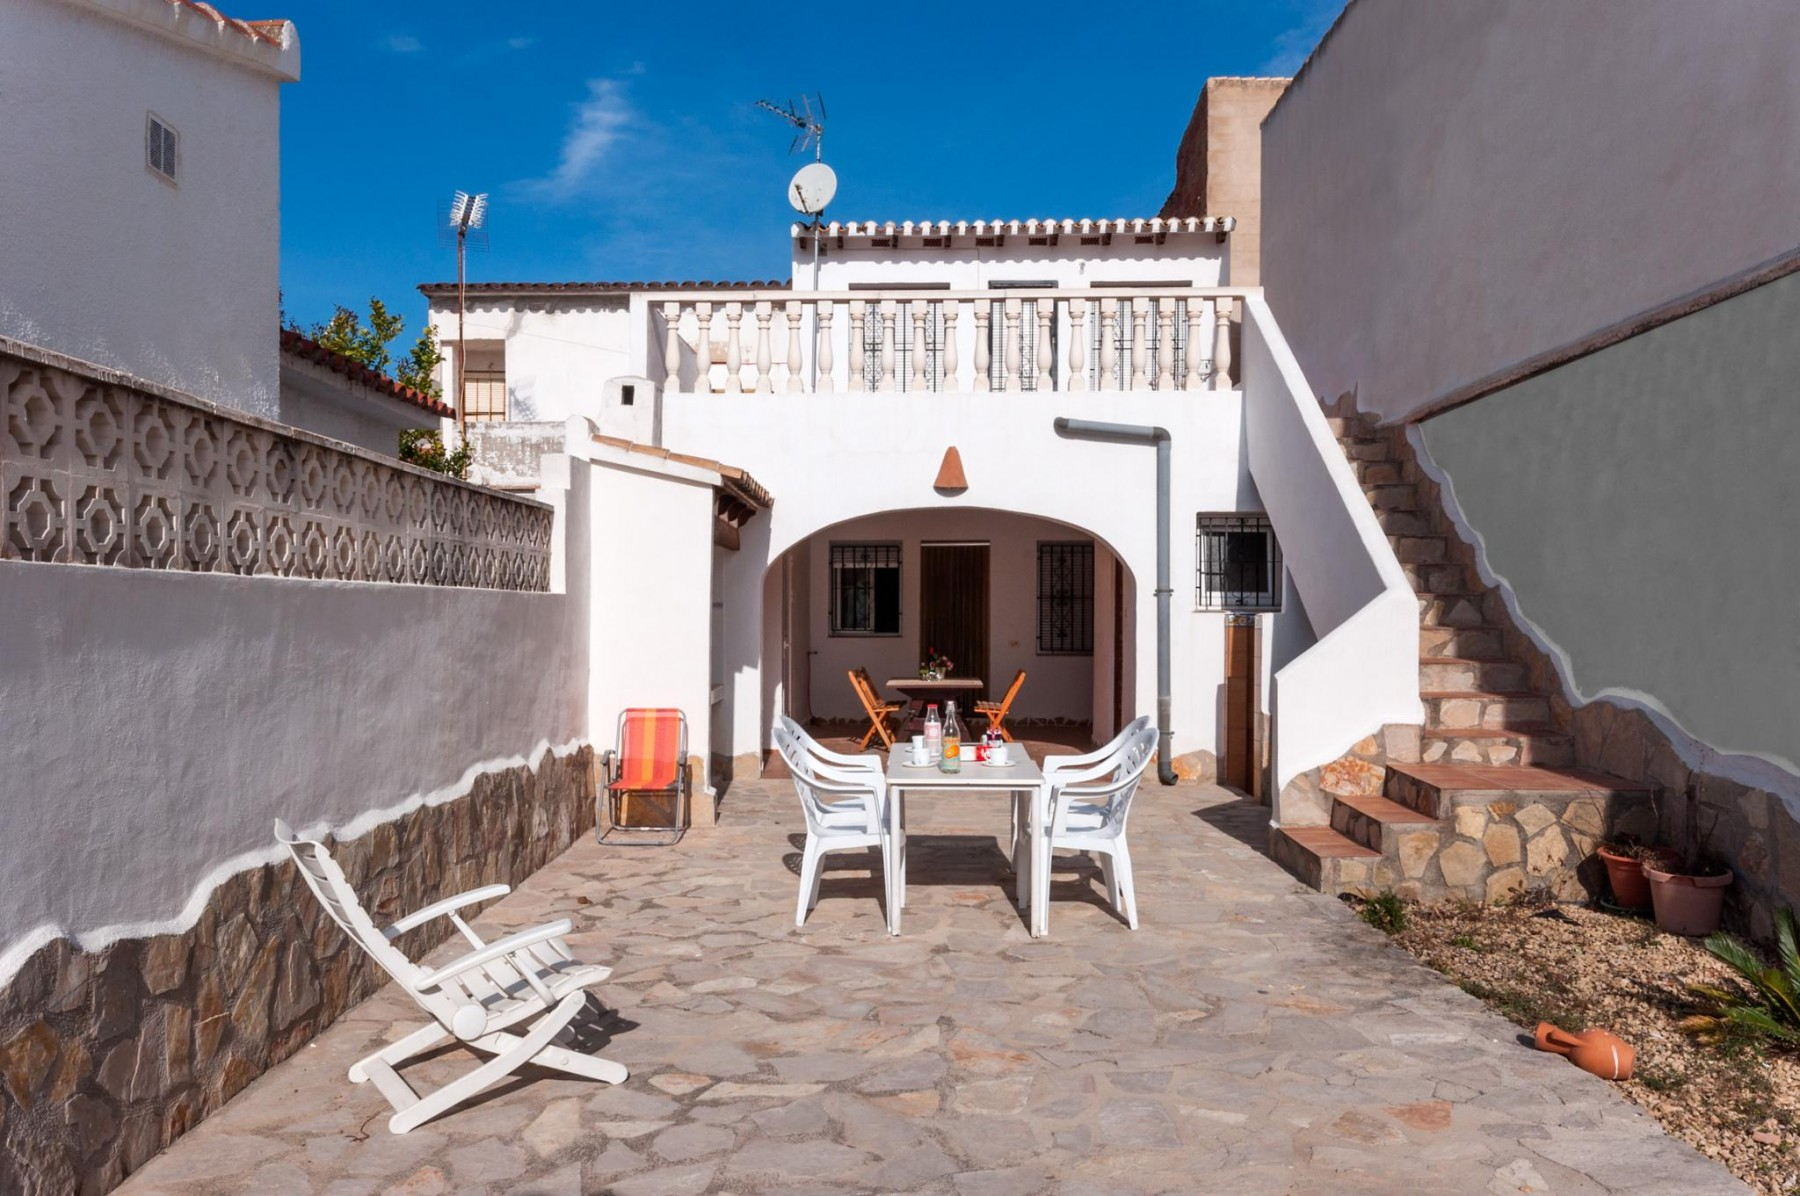 CONILL - 1472 for 8 guests in Oliva, Spanien